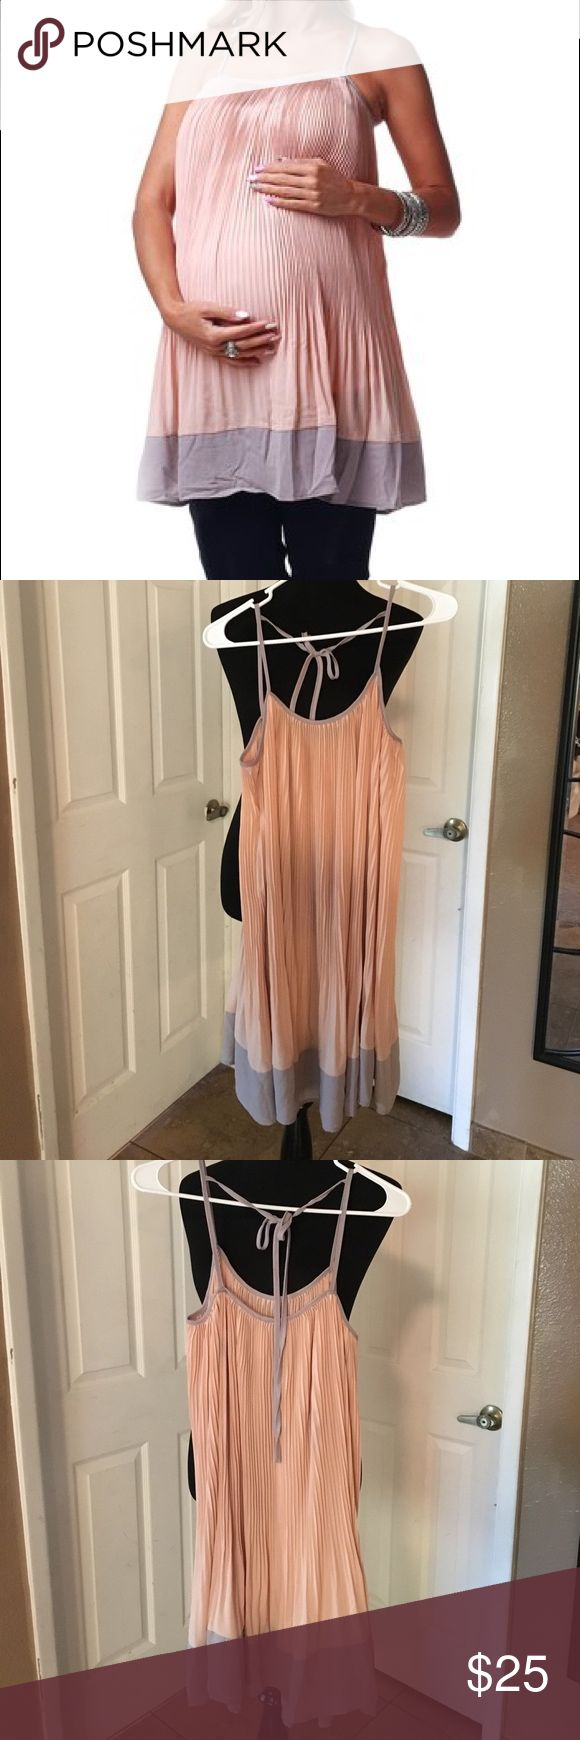 PinkBlush Maternity Top/Dress Chiffon Grey/Peach M PinkBlush Maternity Top or Dress in Knife Pleated Chiffon, Grey and Peach with strappy detail in back. Medium, worn maybe twice to work during pregnancy. No lining, not see through. Pinkblush Dresses